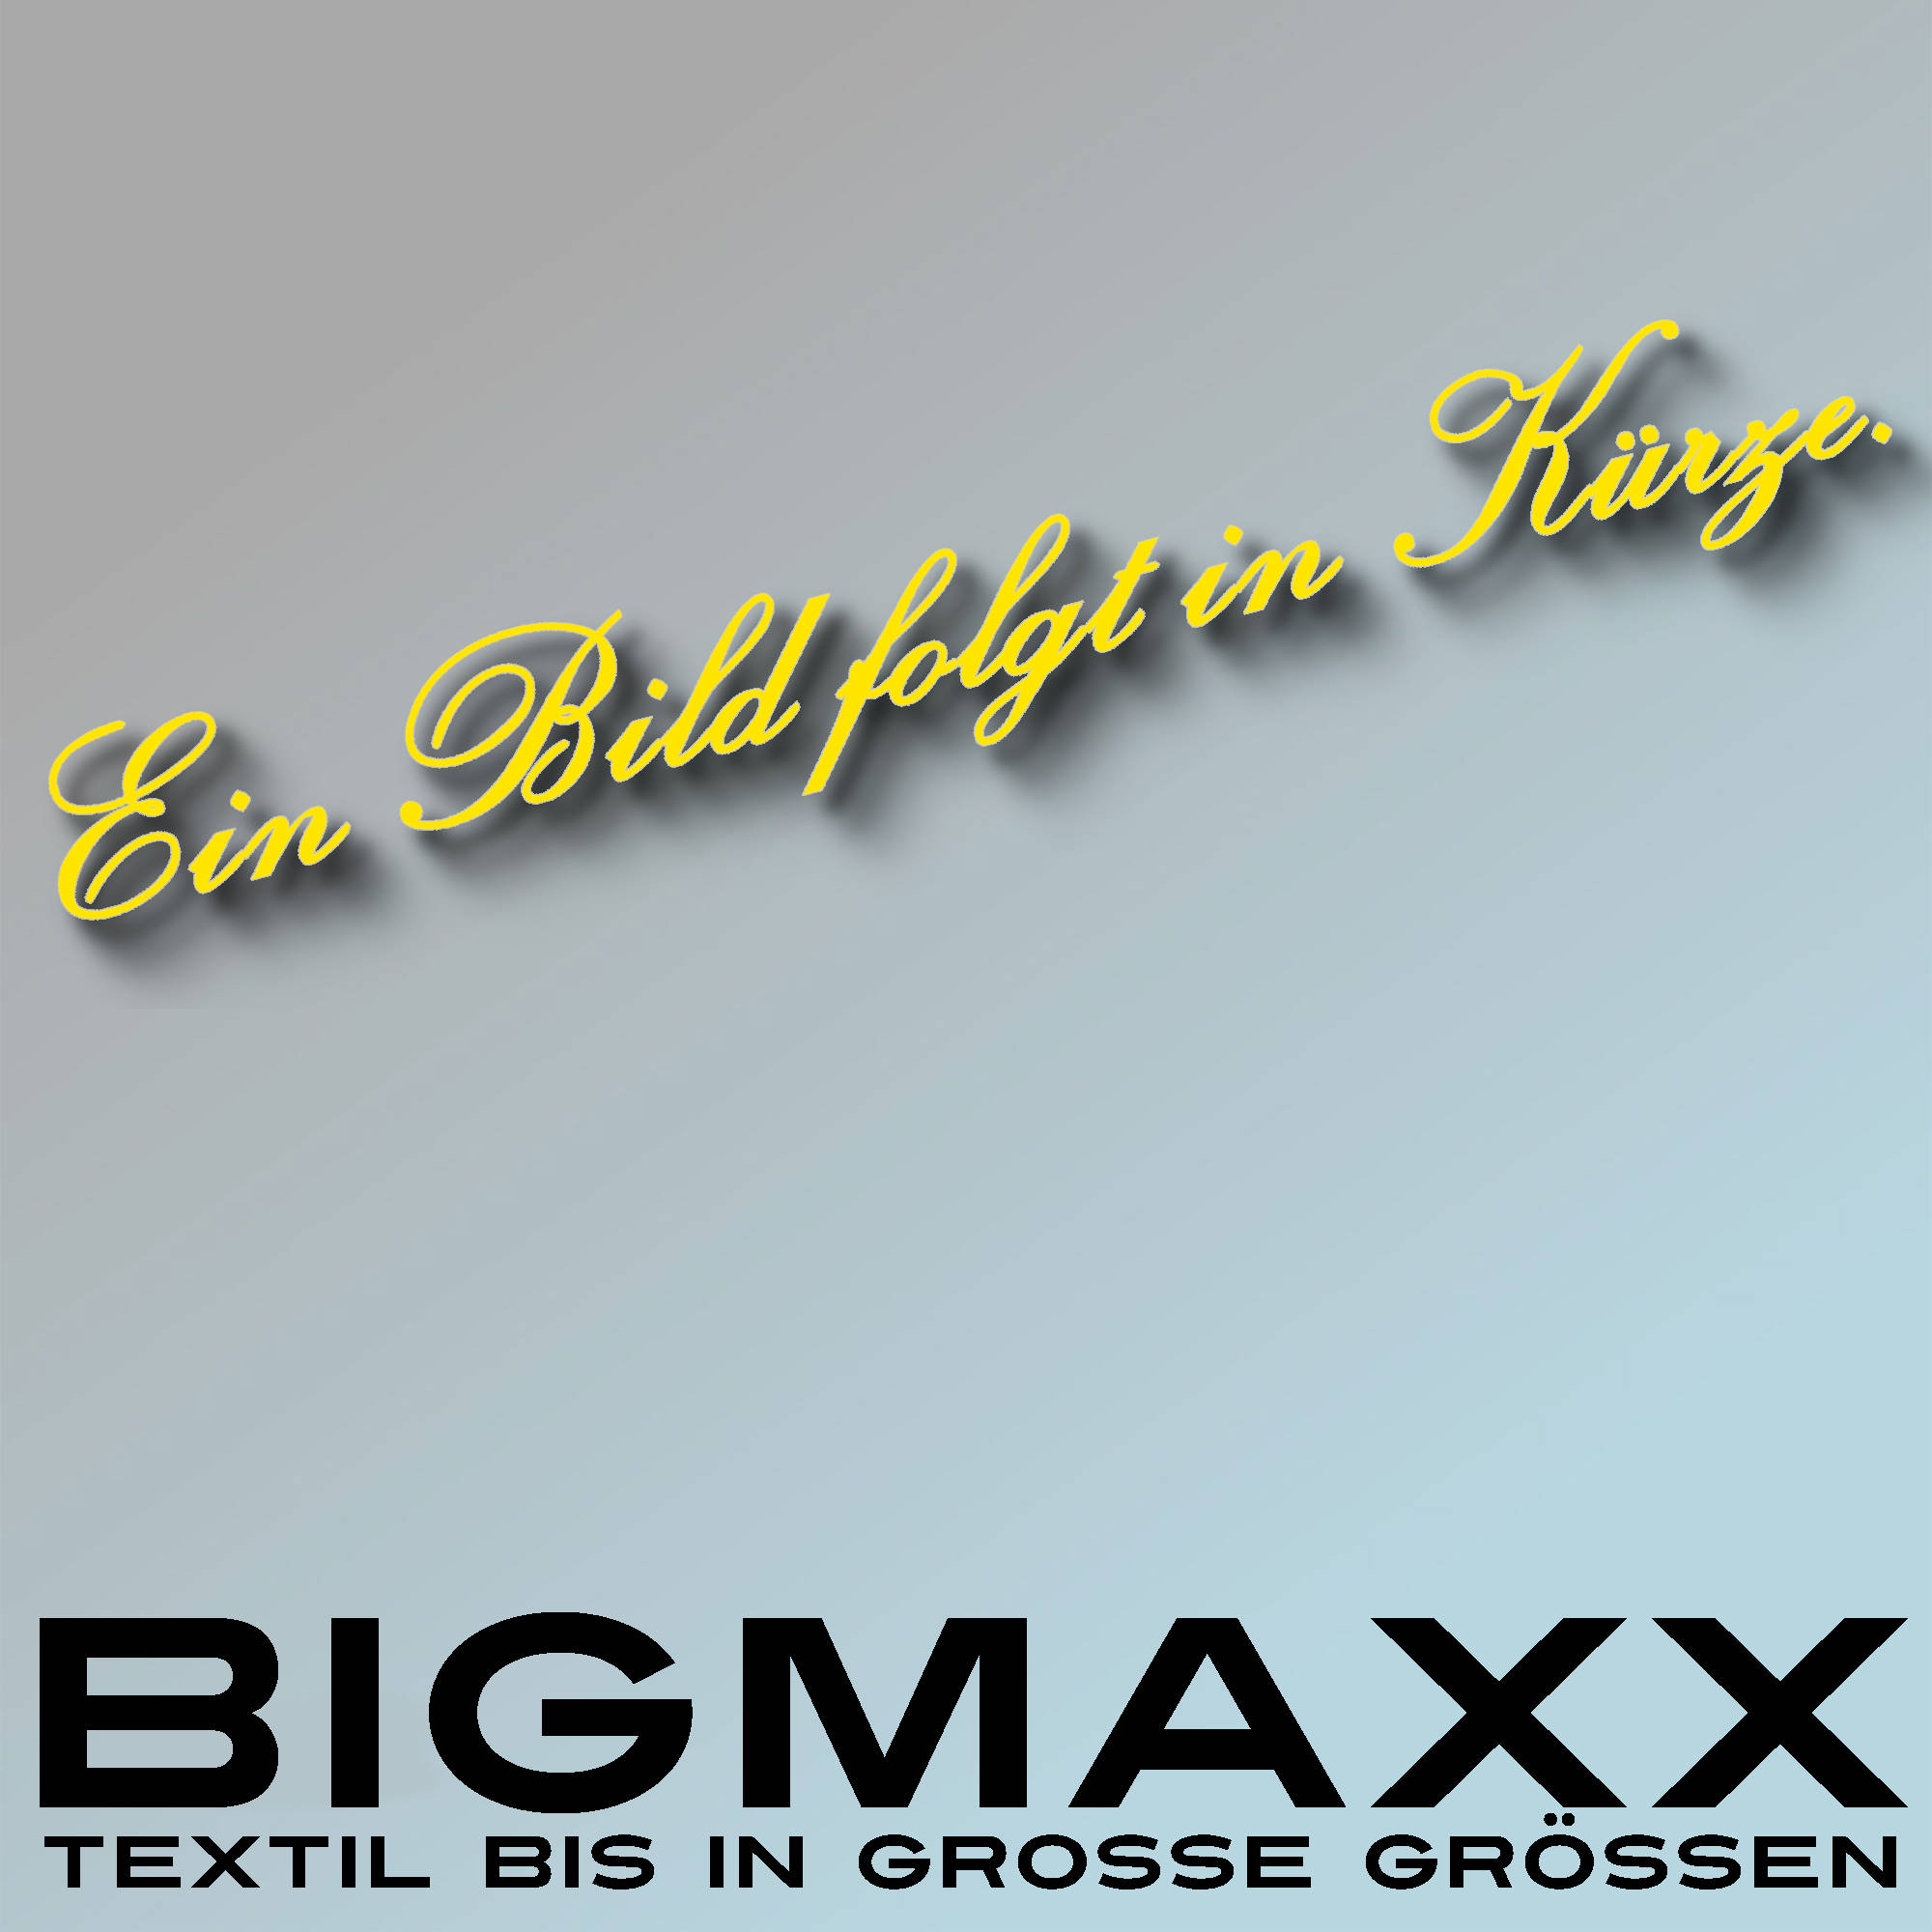 Herren Hooded Jacket Herrenjacke Strickjacke Hoodie Gr S bis 5XL in 8 Farben